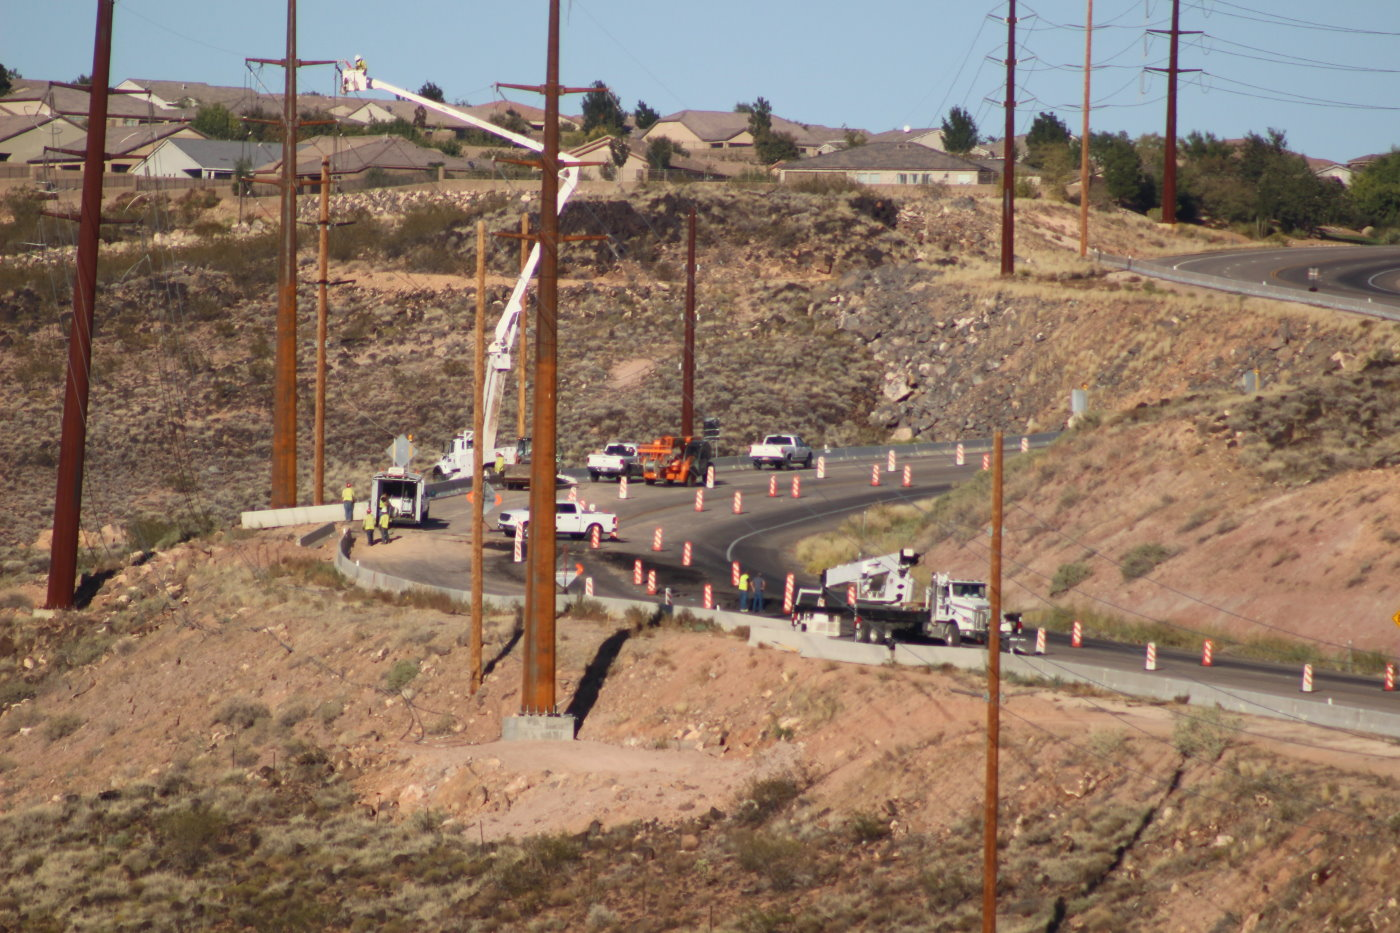 Work on creating an earthen buttress designed to counteract a slow-moving slide on hillside between Washington and Highland parkways in Washington City began Tuesday. However, as heavy machery began to clear the ground at the foot of the hillside, the slide dropped 6 inches, nessitating a closure of a section of Telegraph Street until the hill is considered stabelized by city officials, Washignton City, Utah, Sept. 27, 2016   Photo by Mori Kessler, St. George News